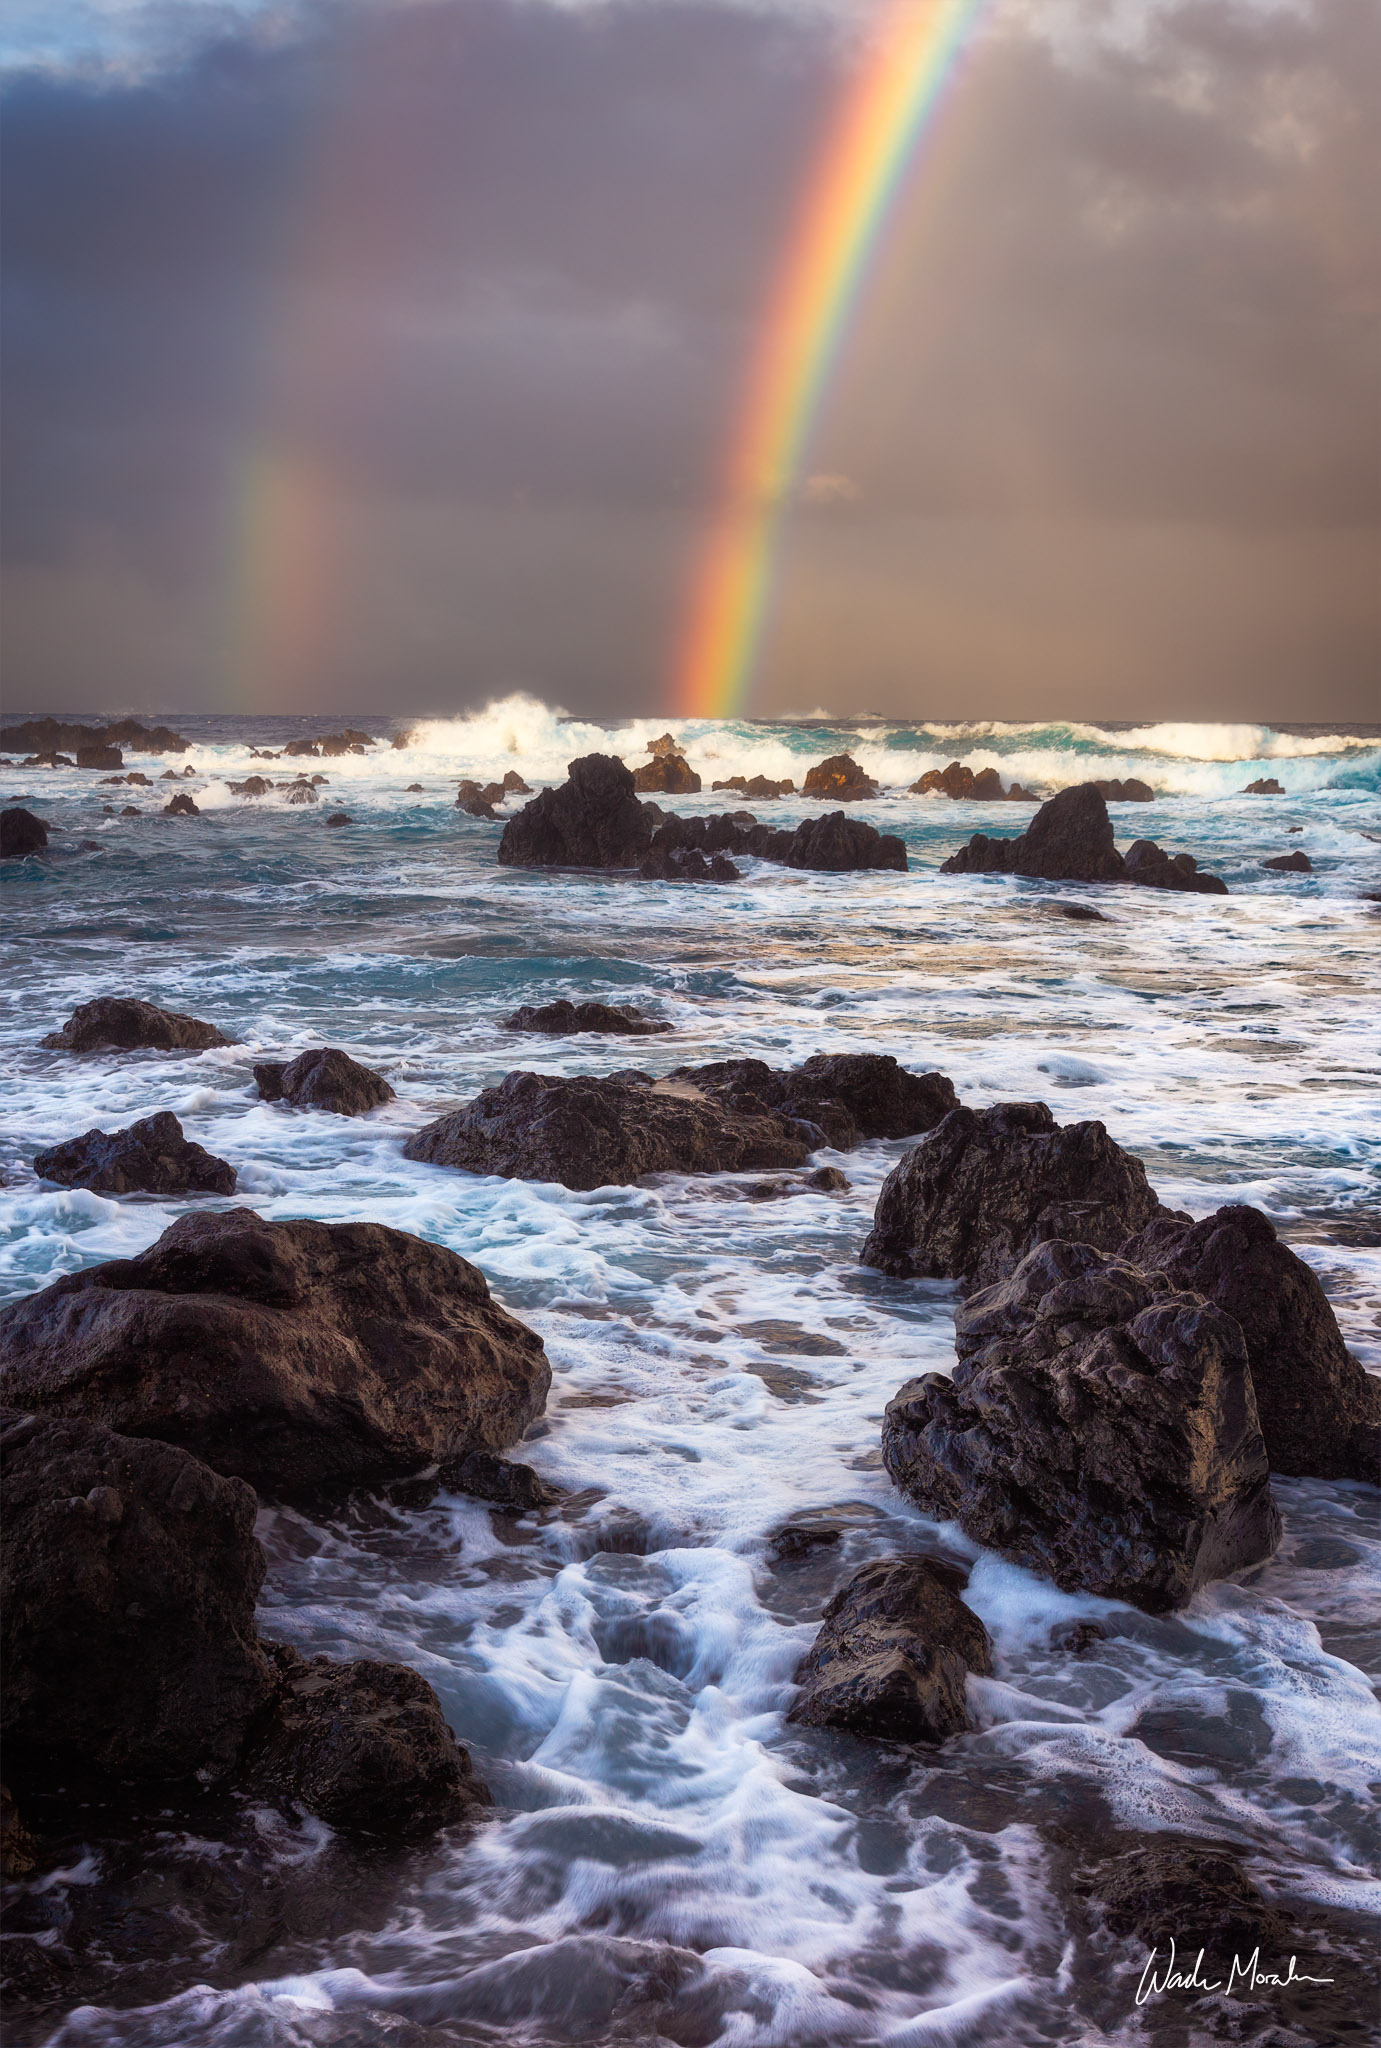 This vibrant rainbow was captured down at Laupahoehoe Point on the Big Island of Hawaii. The waves rushing in over the rocky...